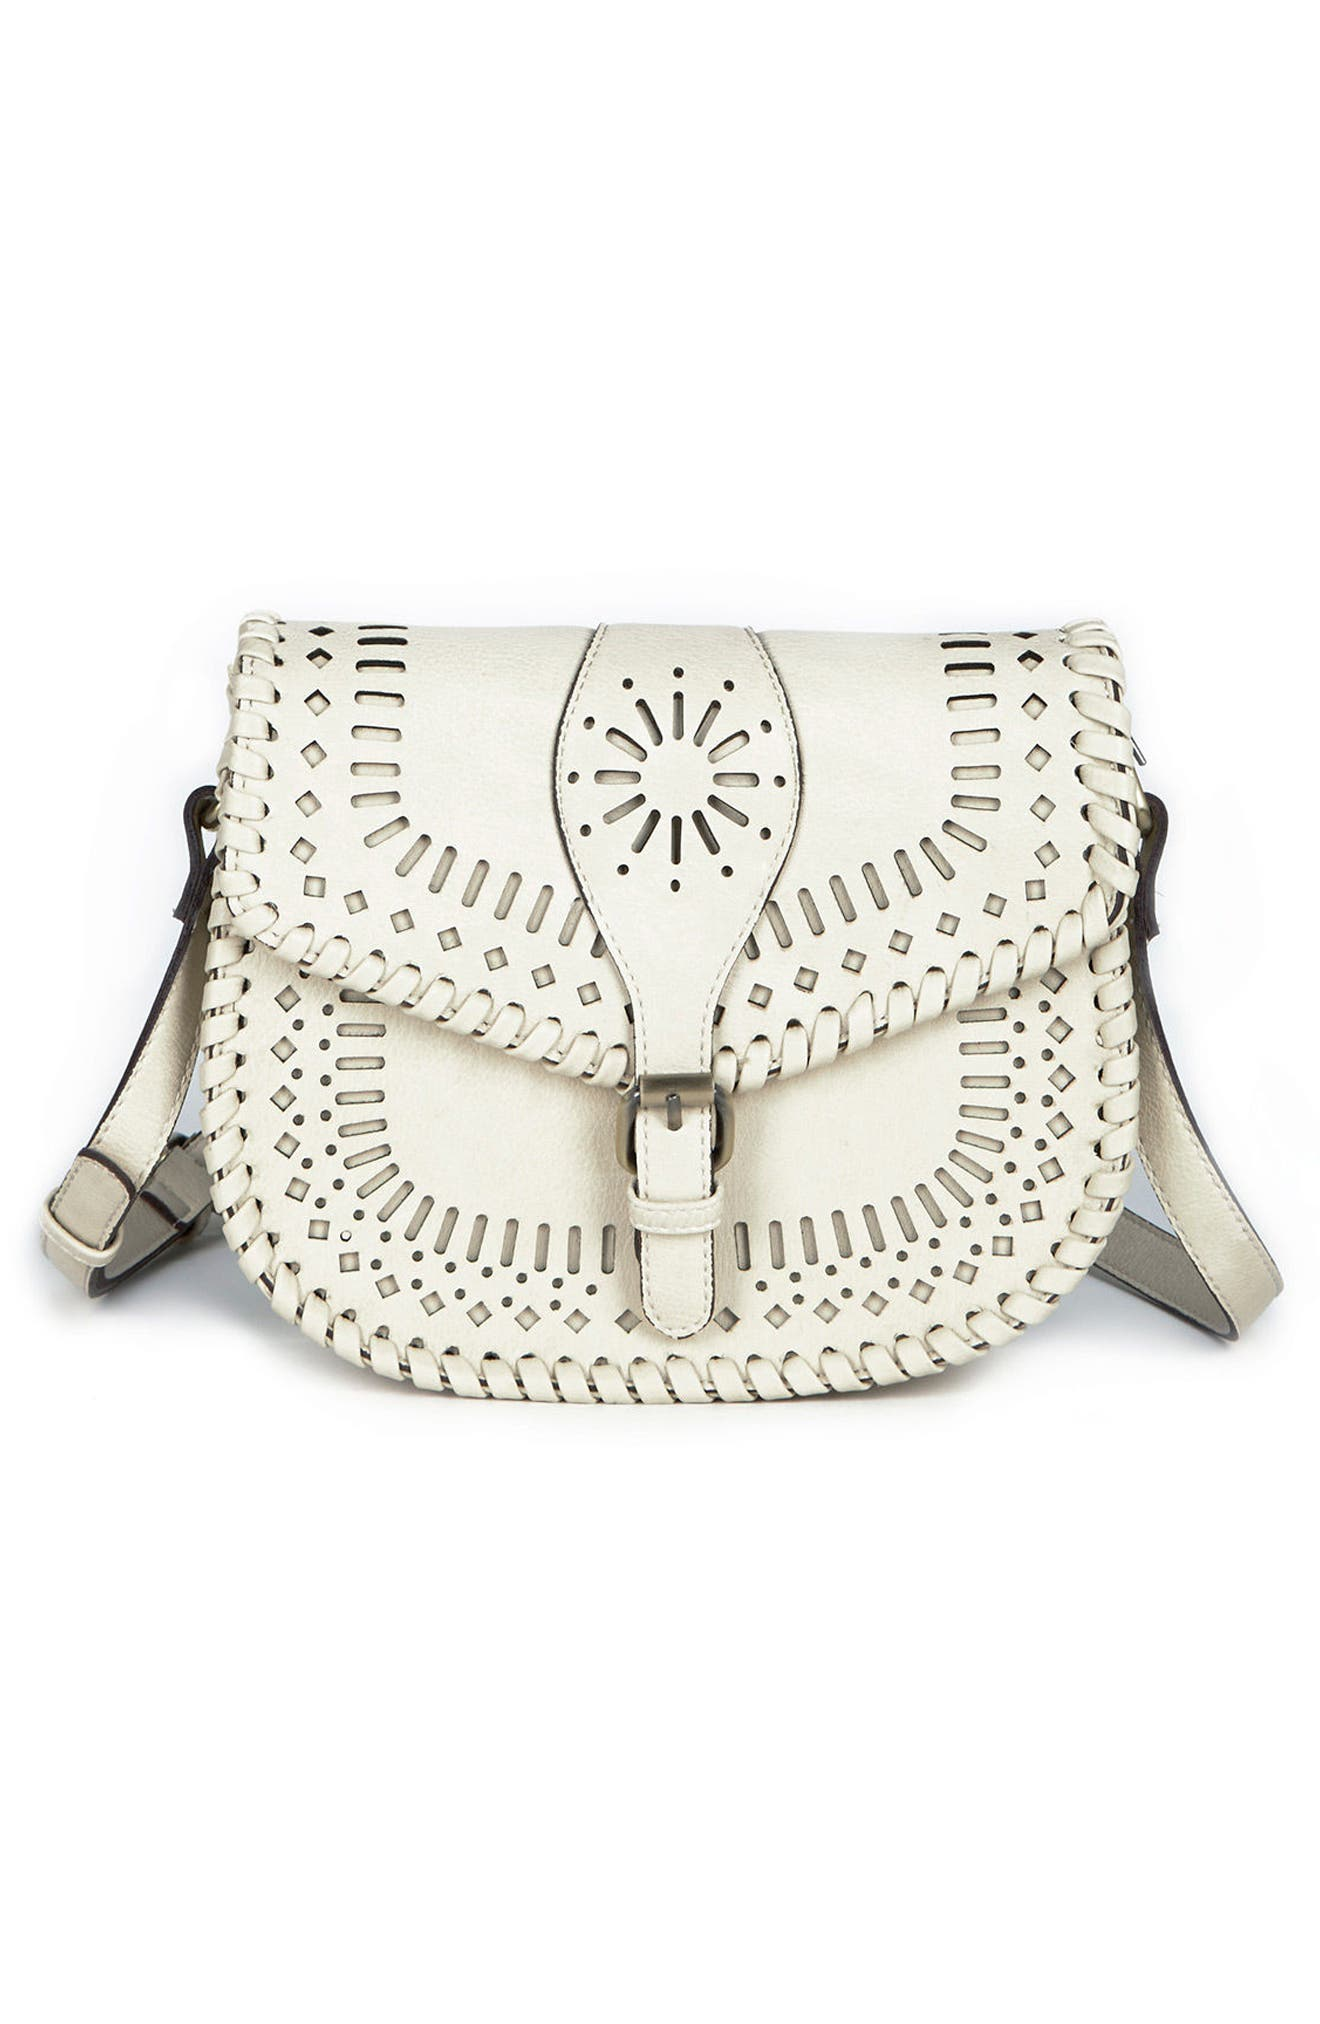 Main Image - Sole Society 'Kianna' Perforated Faux Leather Crossbody Bag